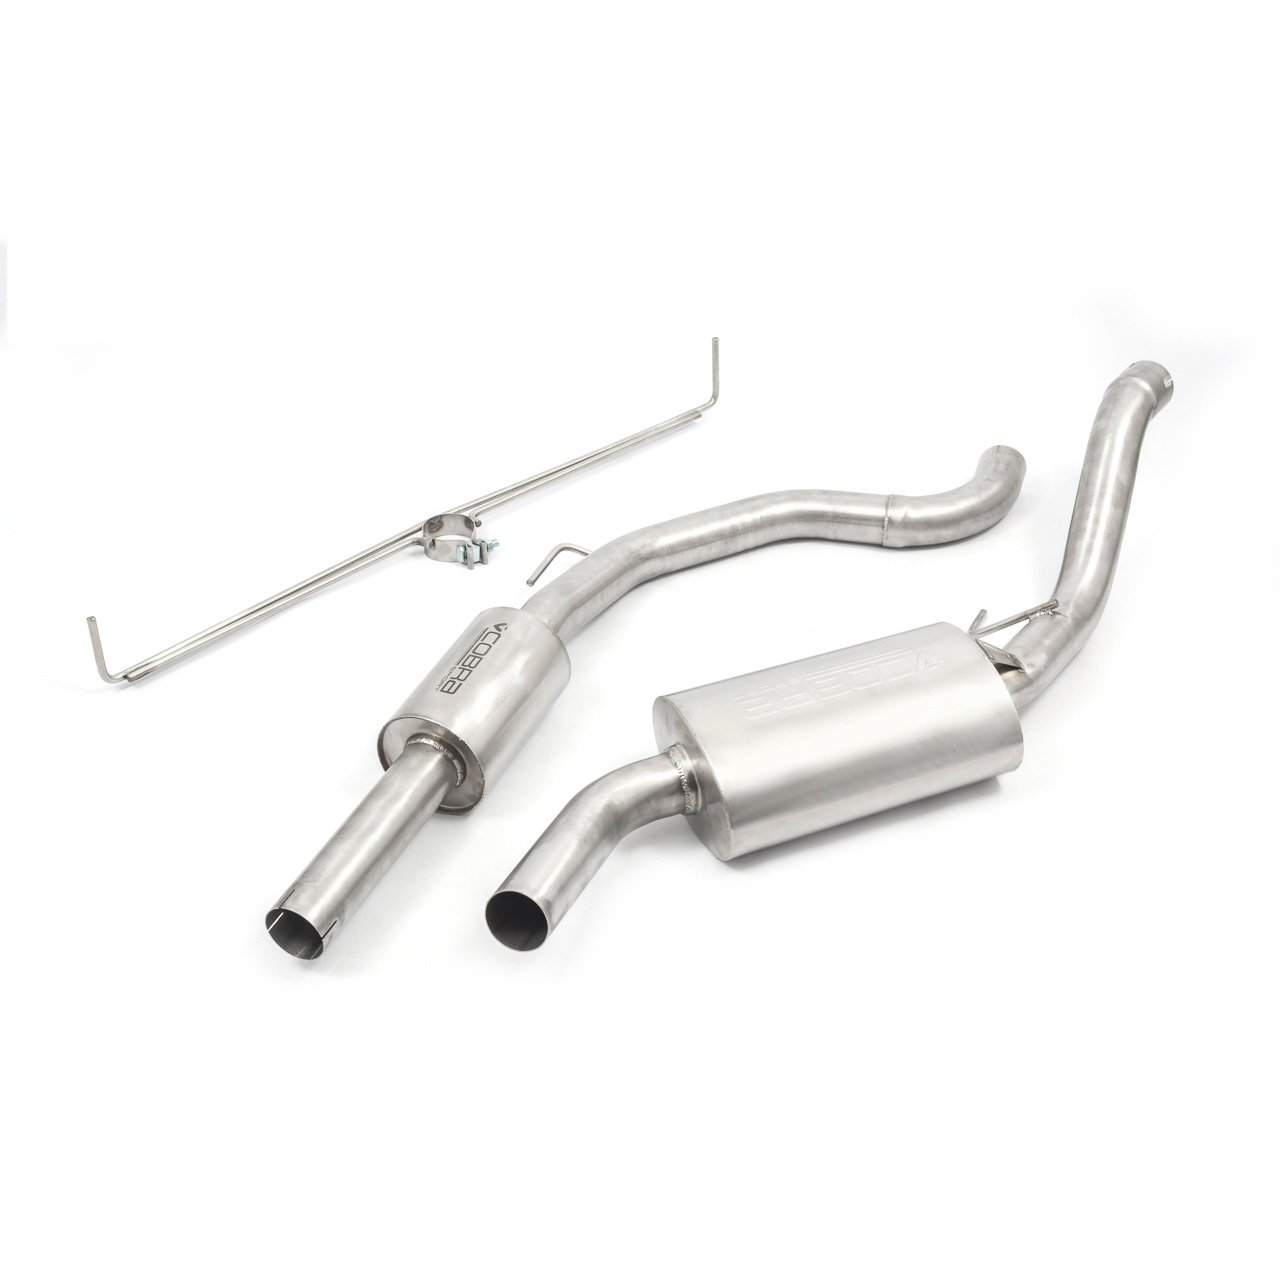 Vauxhall Corsa D VXR (07-09) Cat Back Performance Exhaust